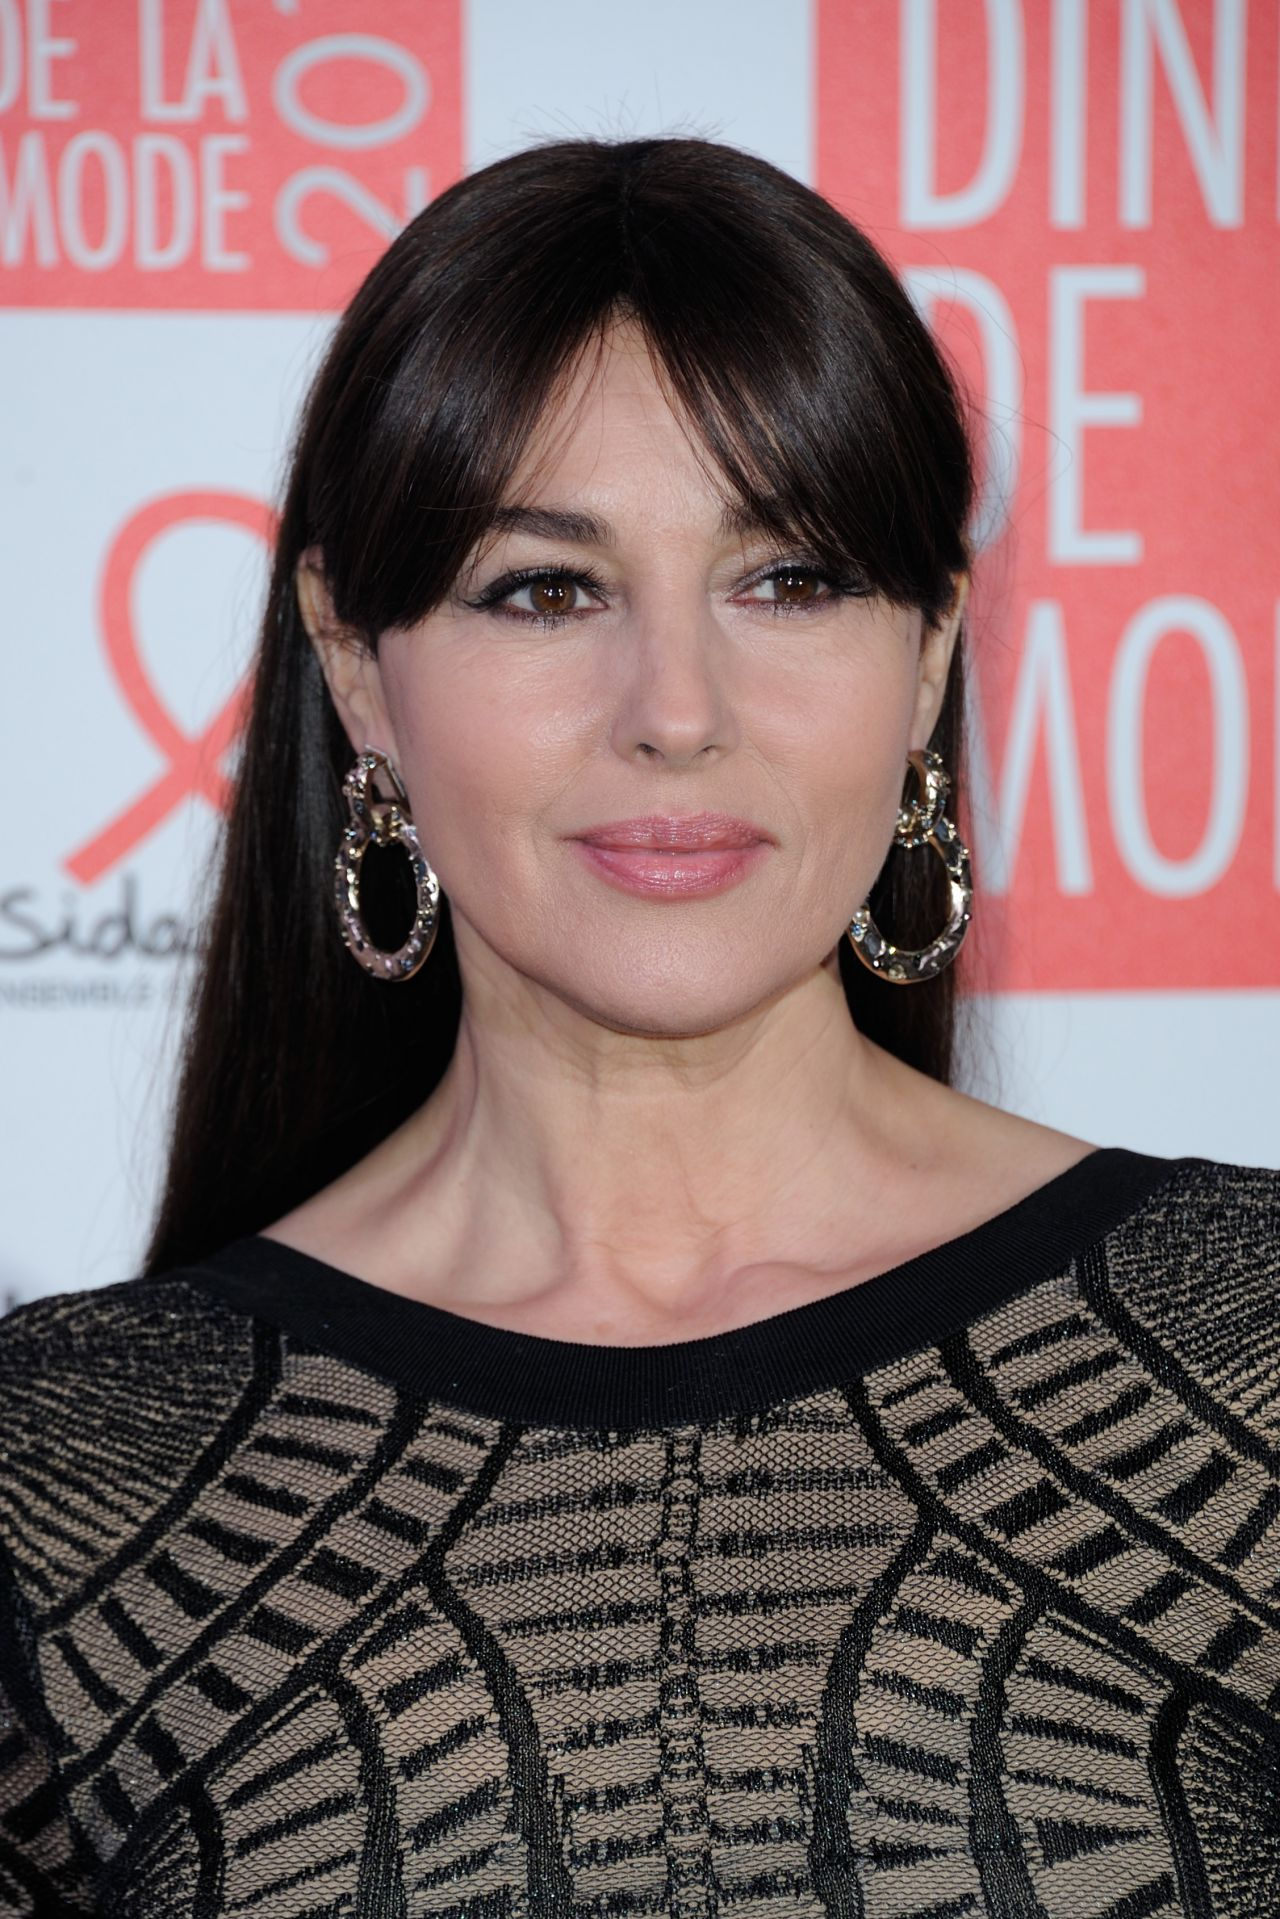 Monica Bellucci – Sidaction Gala Dinner 2016 in Paris Monica Bellucci